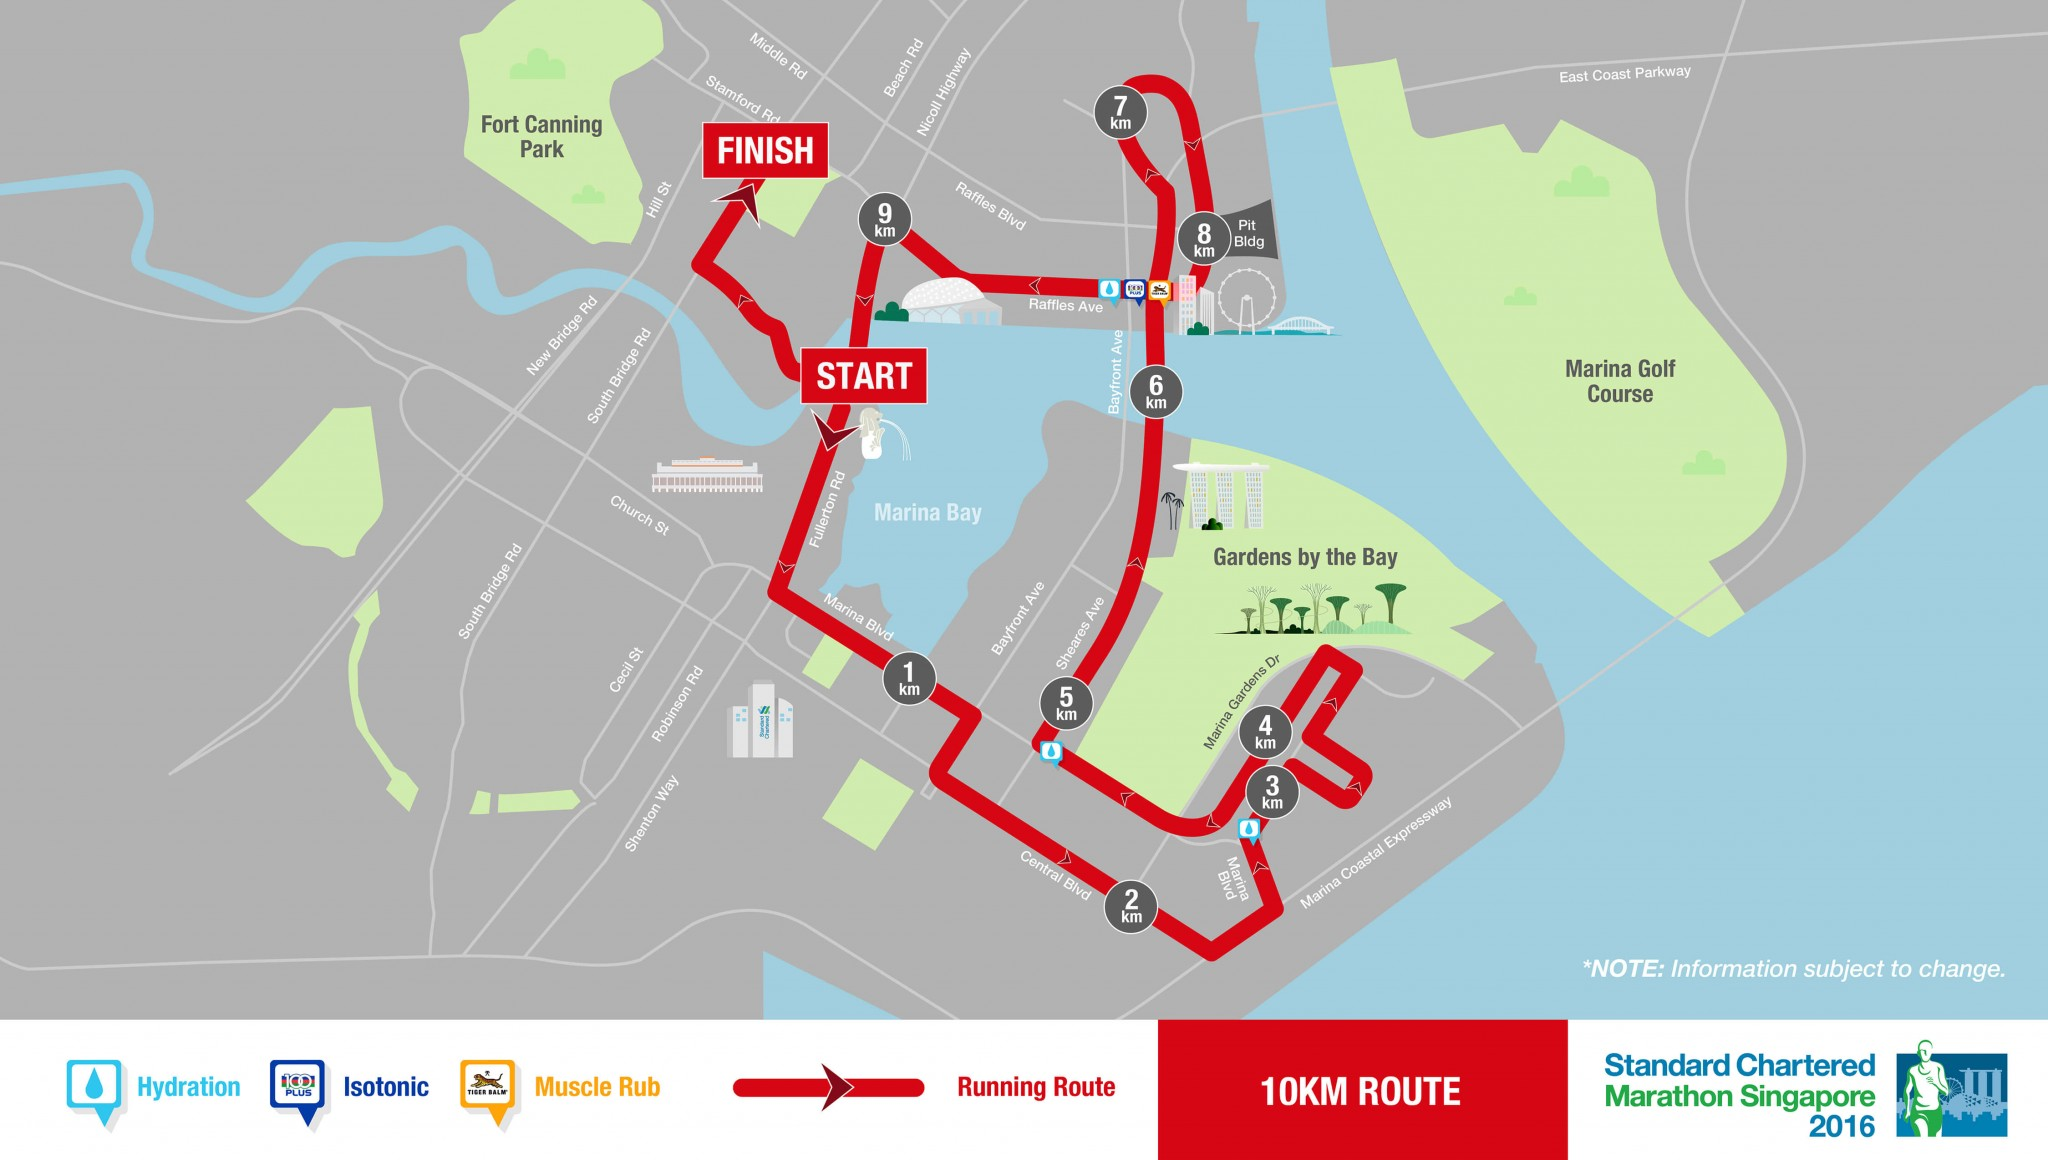 scms16route_10km-new6_web